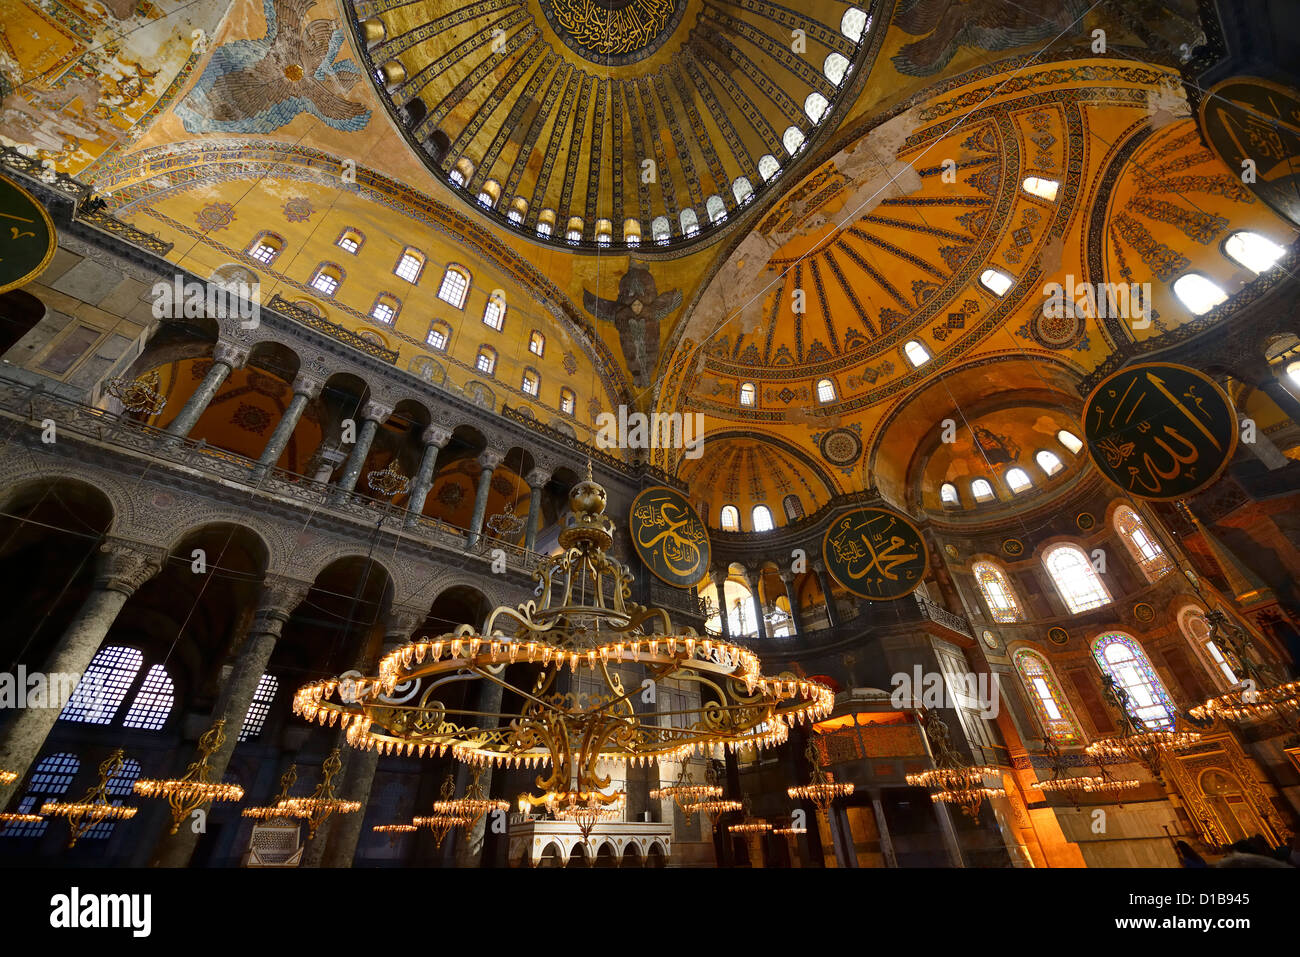 Golden ceiling domes and lit chandeliers in the hagia sophia golden ceiling domes and lit chandeliers in the hagia sophia istanbul turkey aloadofball Images